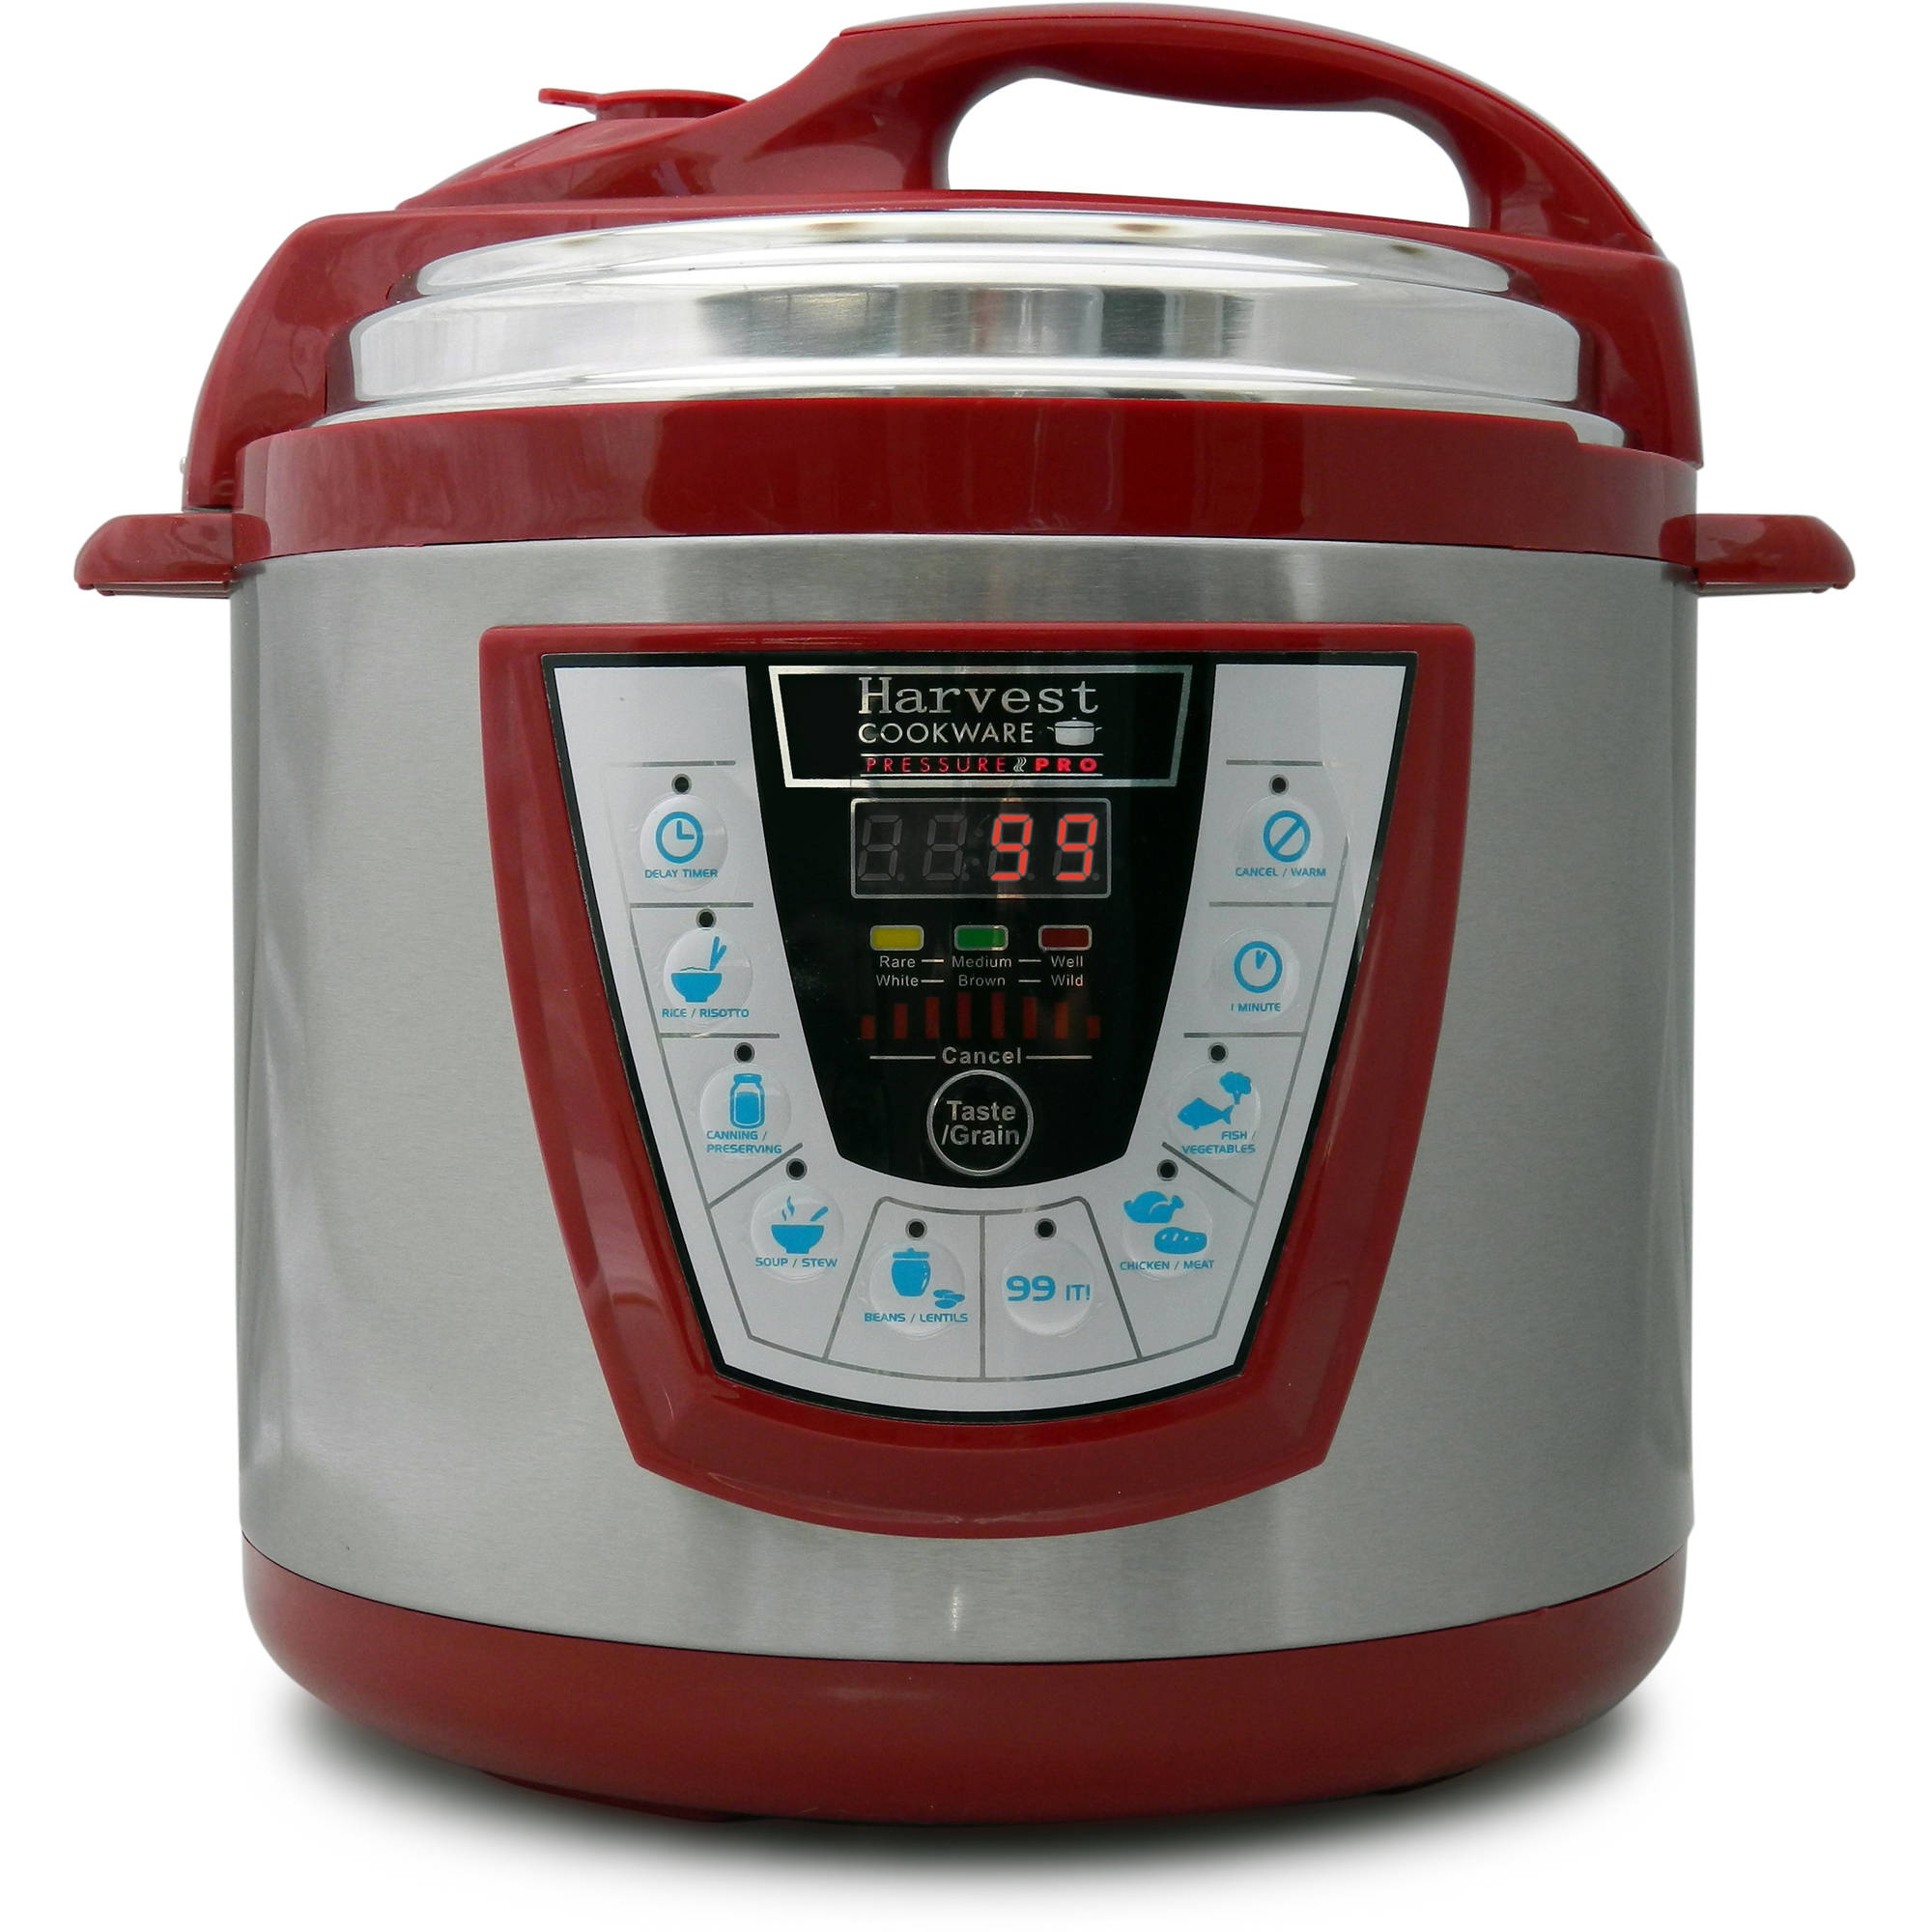 Harvest Cookware Electric Original Pressure Pro 6-Quart Pressure Cooker, Red